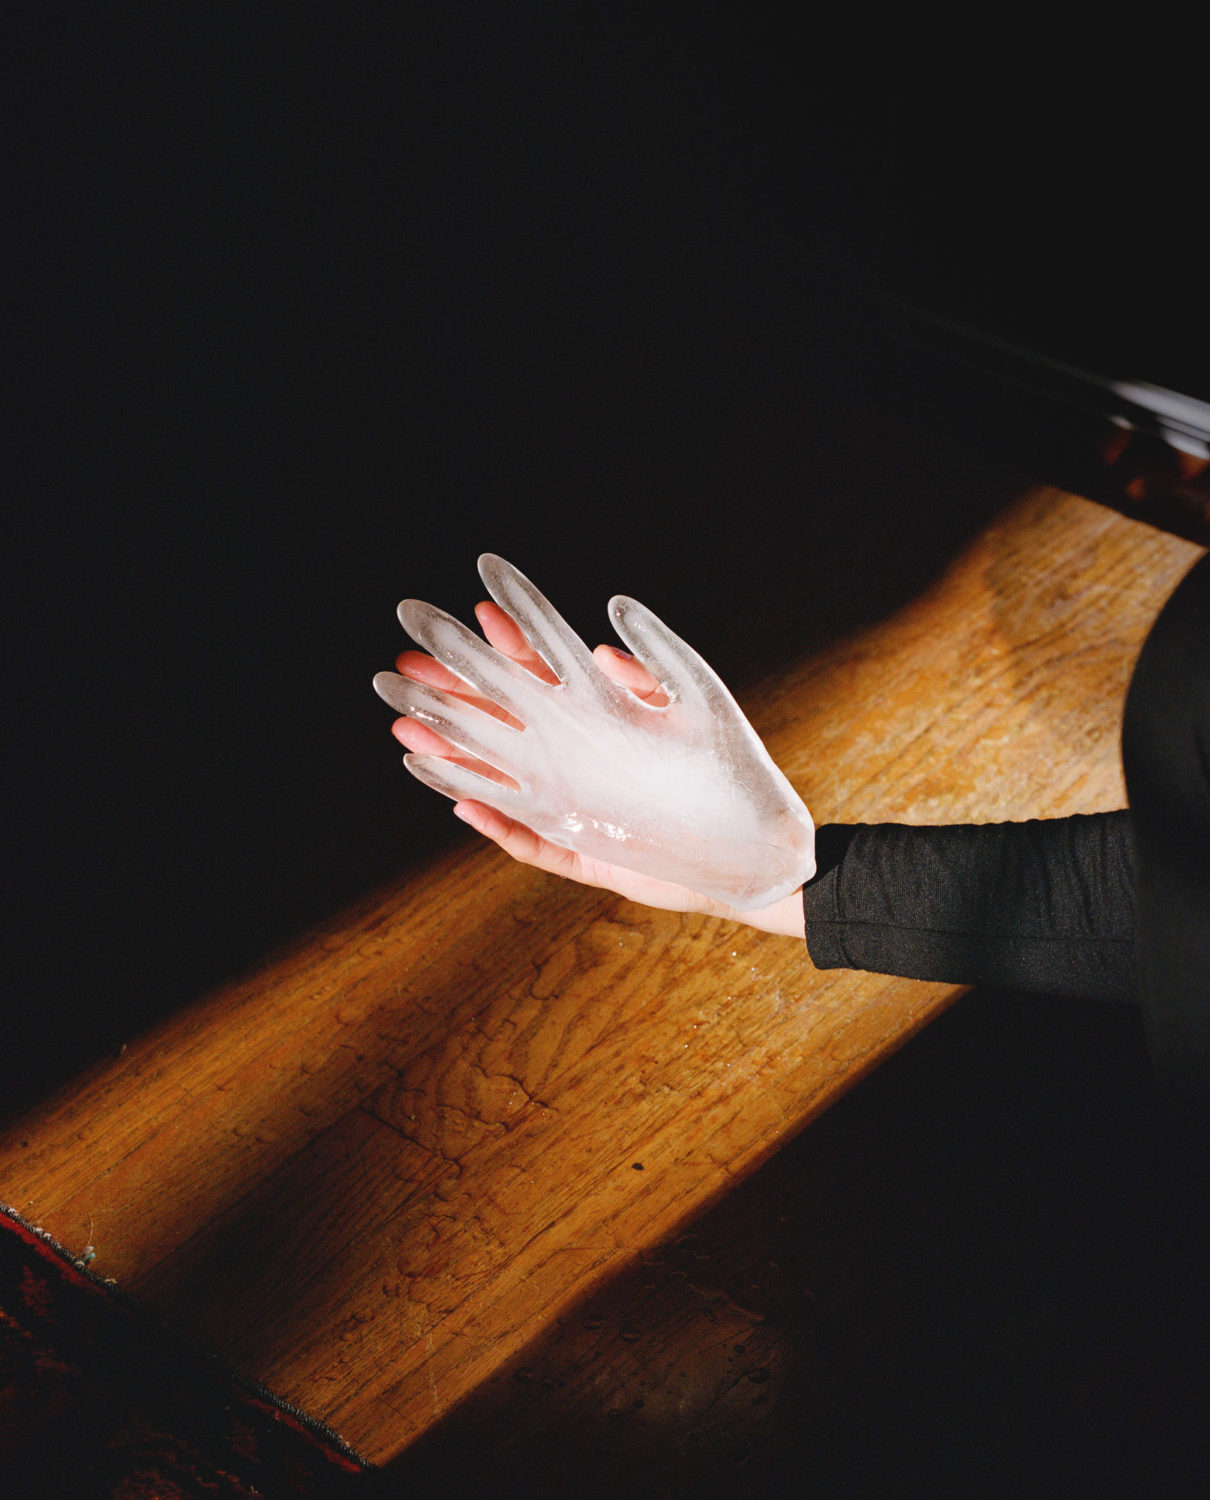 Black image with a dramatically lit wooden plank background. An arm in a black long sleeve shirt is coming in from the left side of the image and the hand is holding an ice block in the shape of a hand.